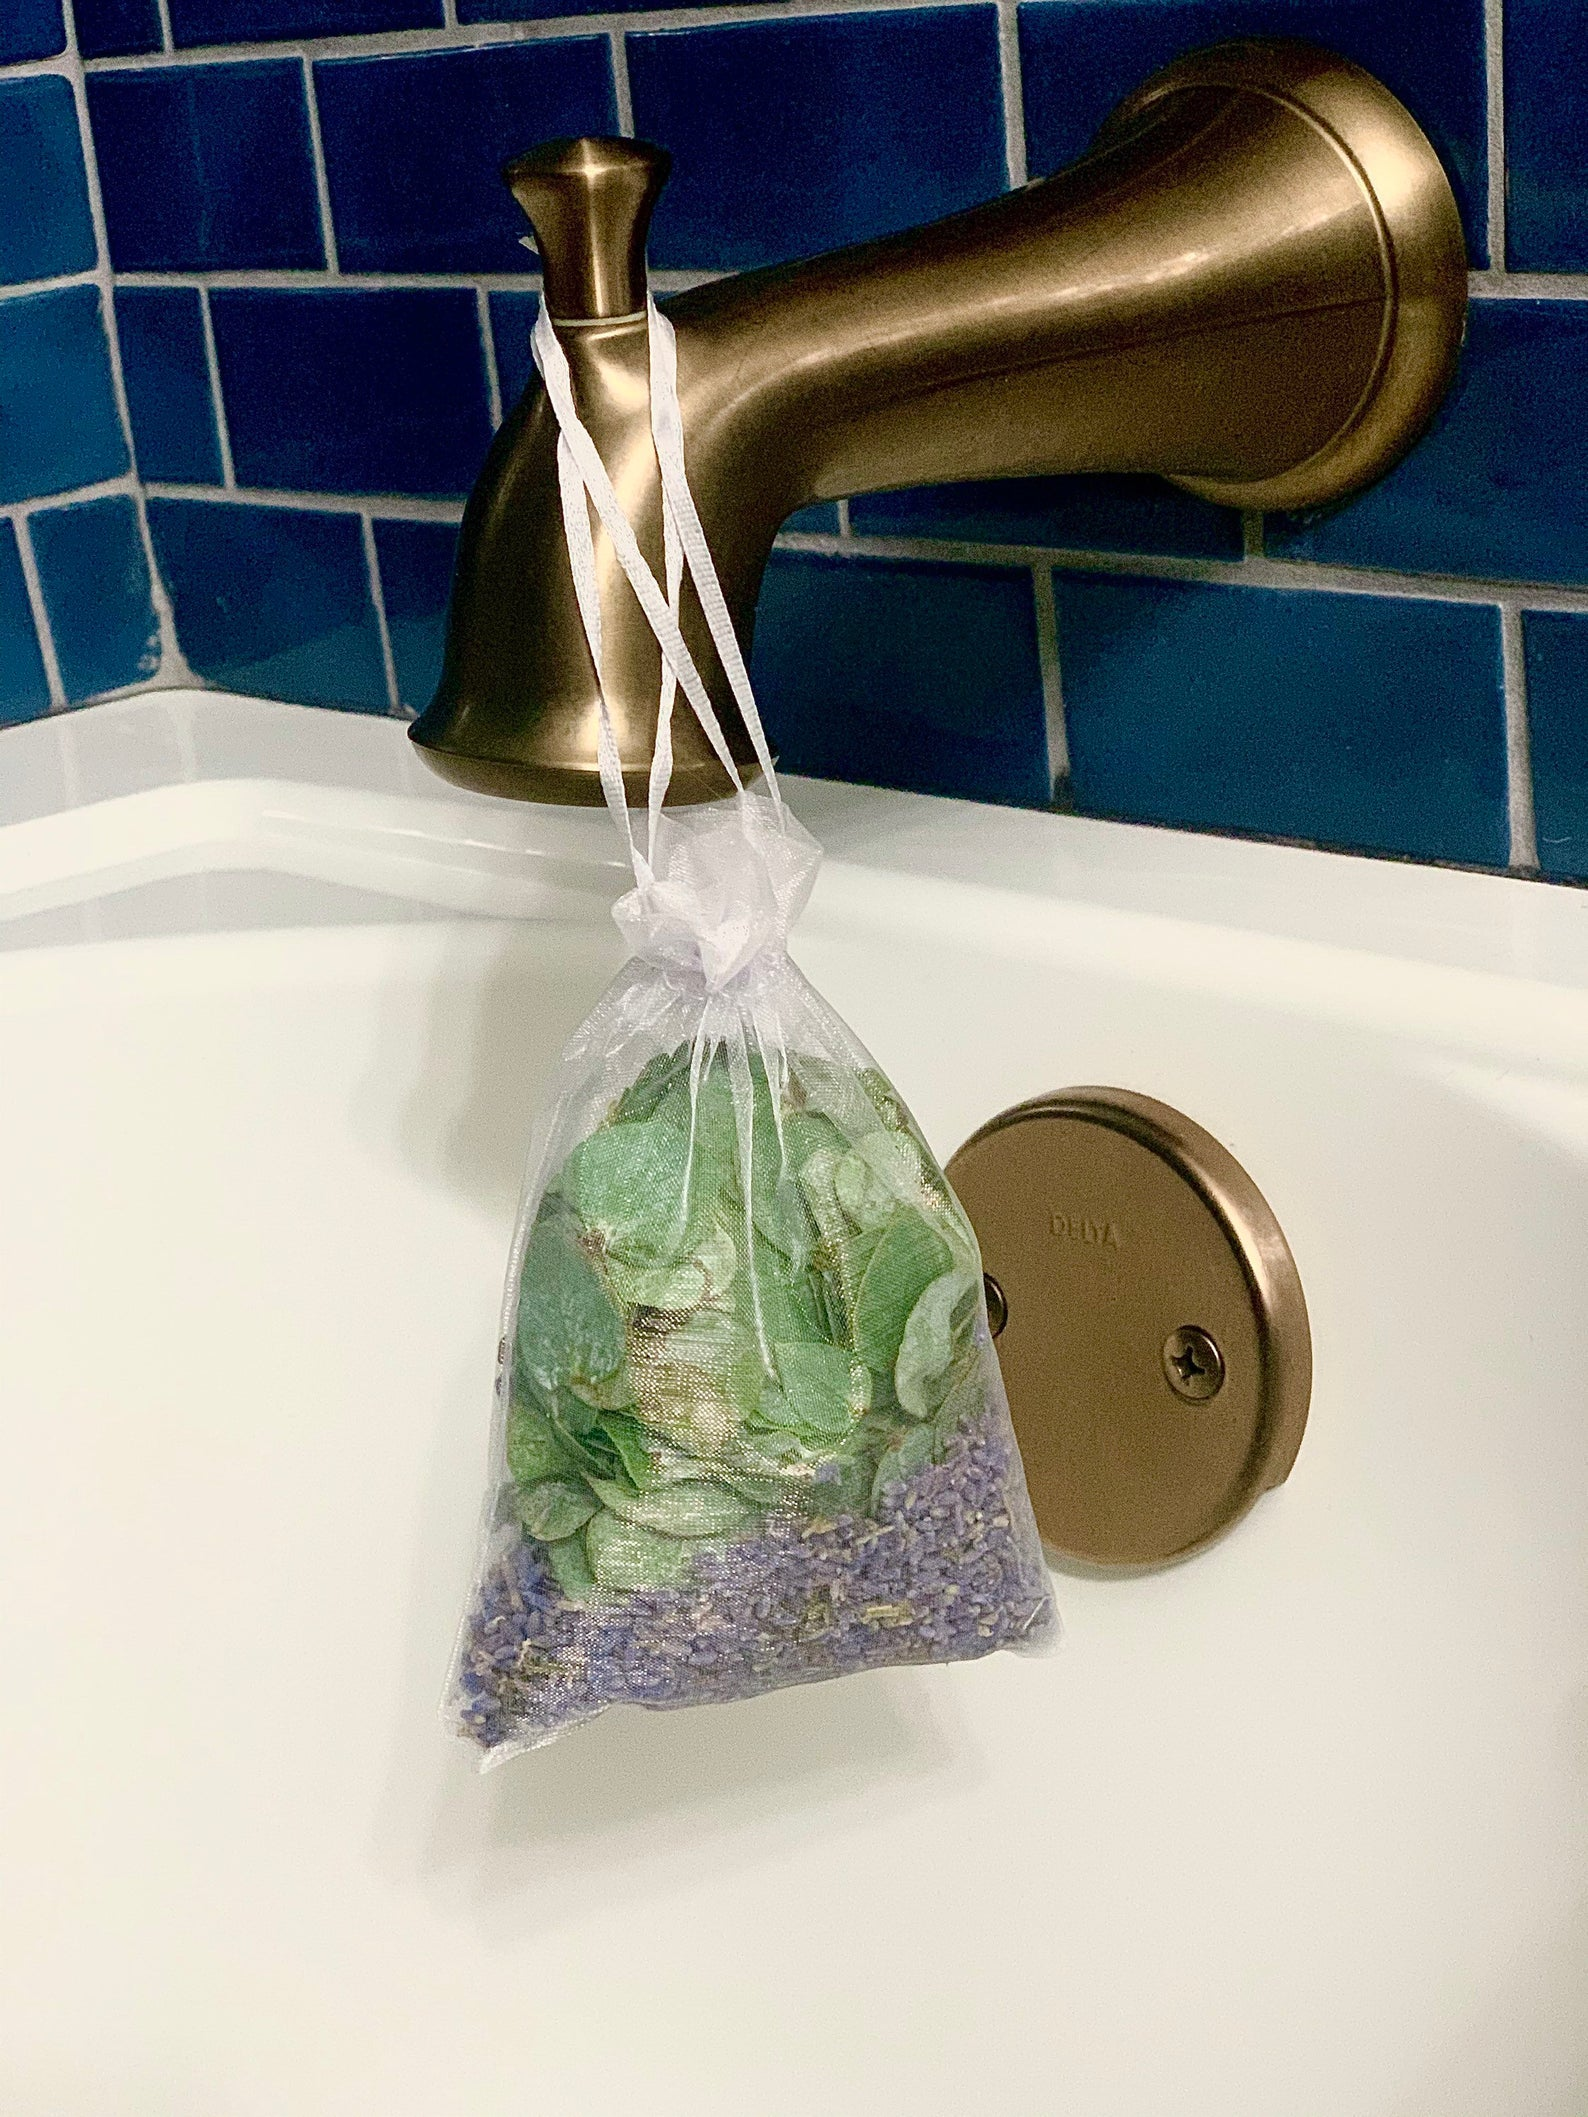 a pouch filled with eucalyptus and lavender hanging on a shower nozzle